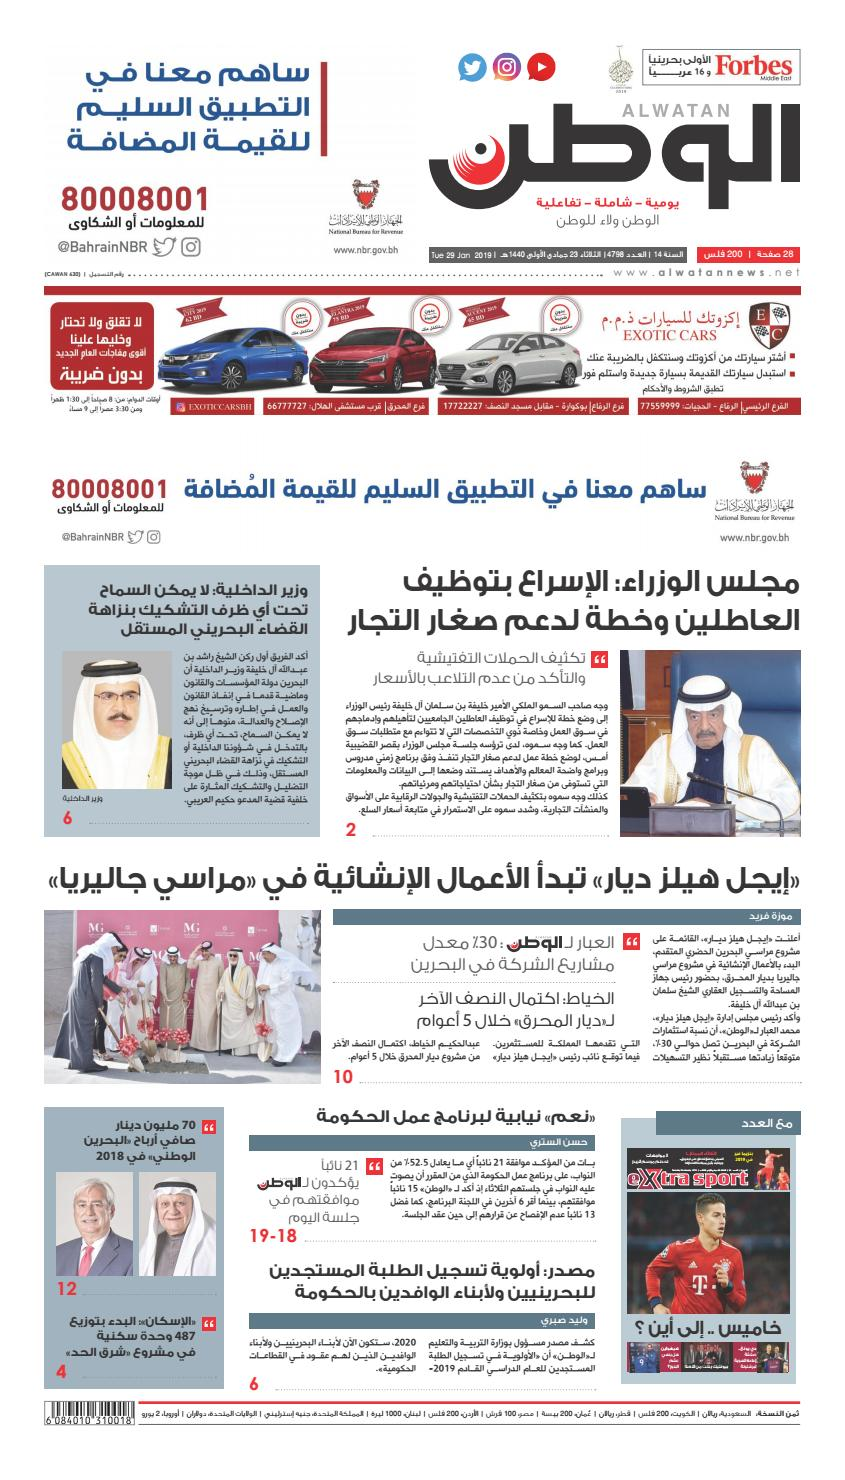 45b79f8d0 Alwatan 29 JAN 2019 by Alwatan_BH - issuu